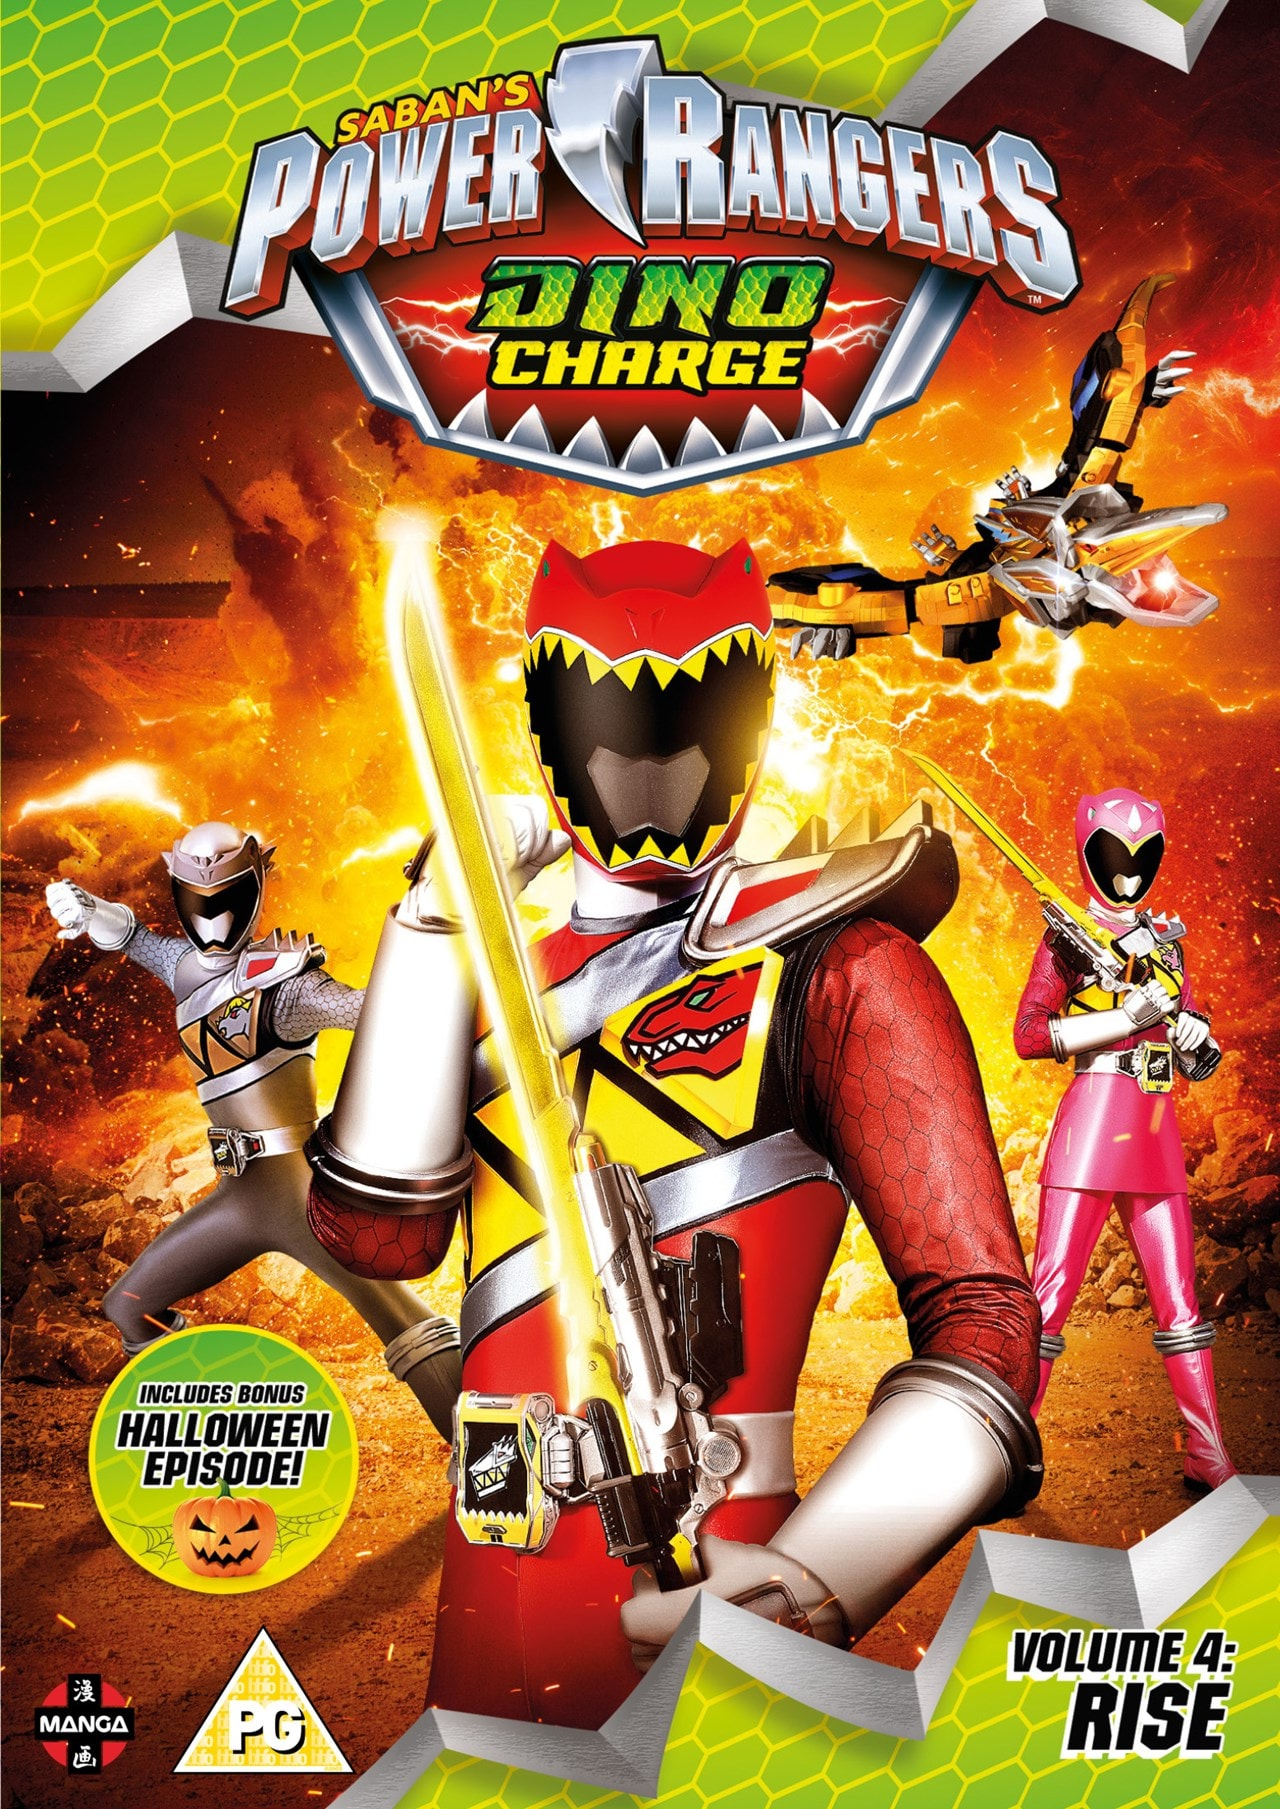 Power Rangers Dino Charge: Volume 4 - Rise - 1